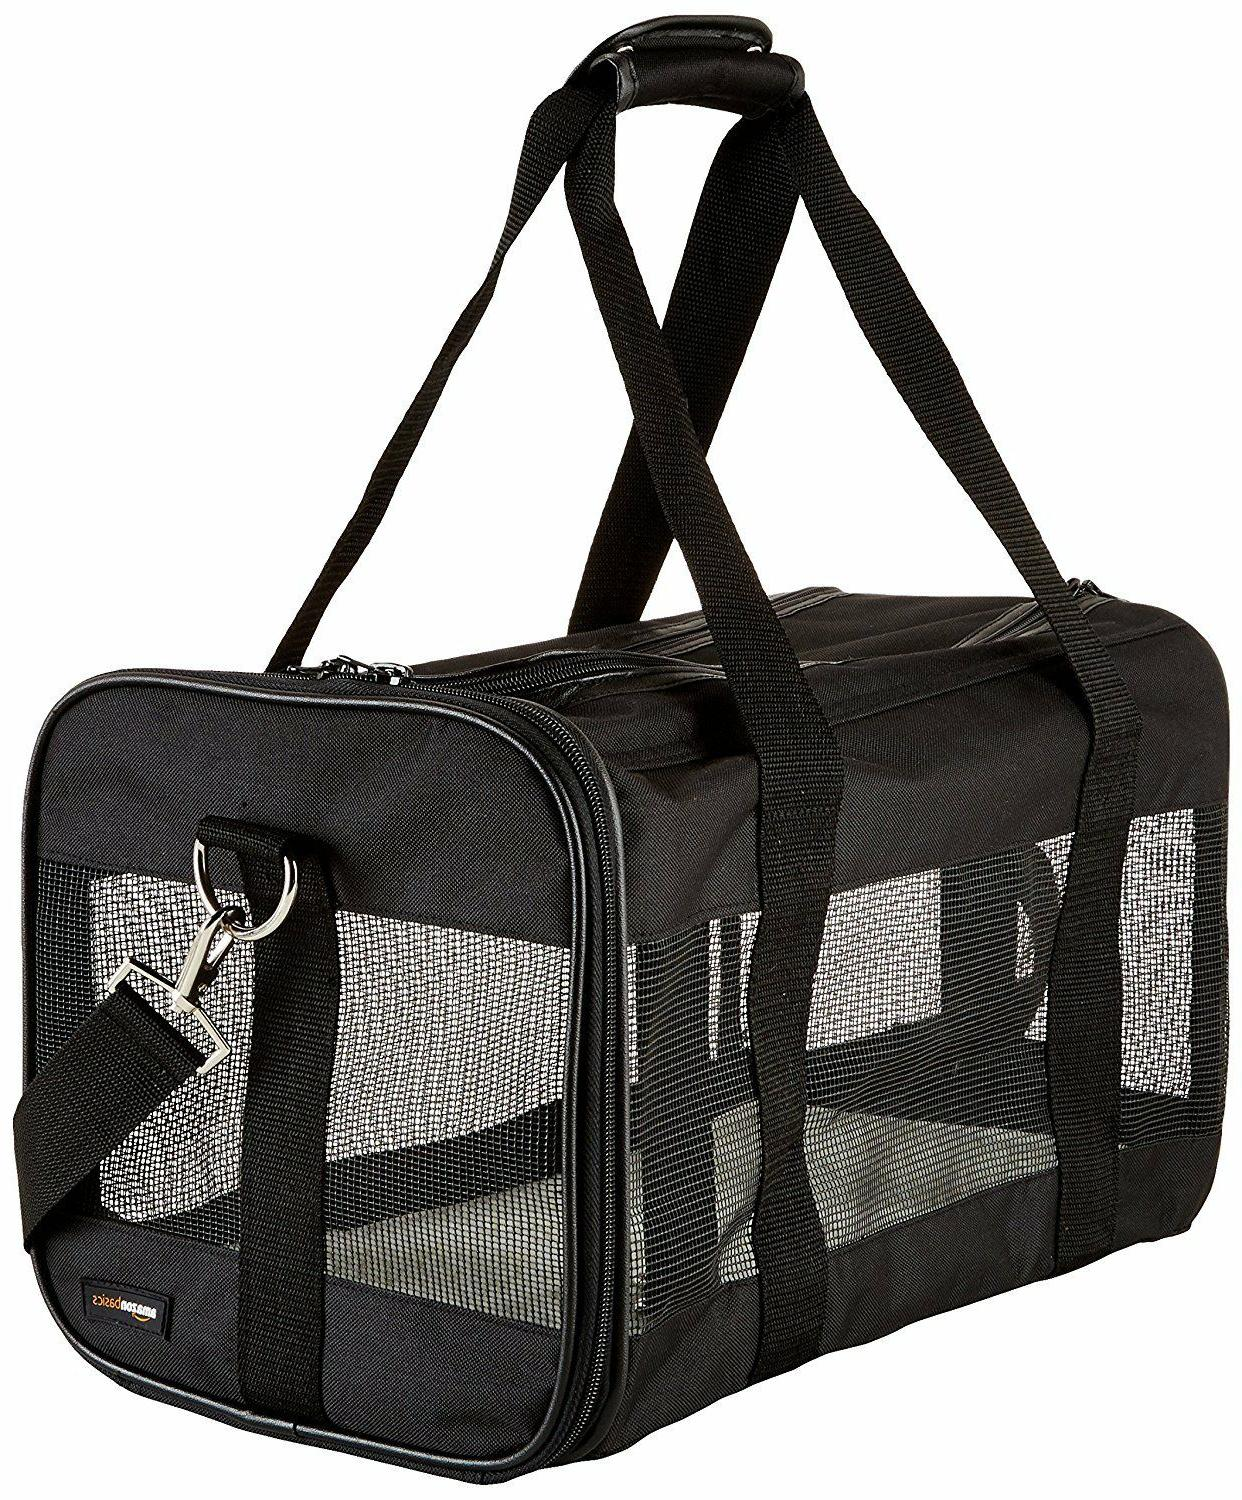 soft sided pet carriers dog tote crate